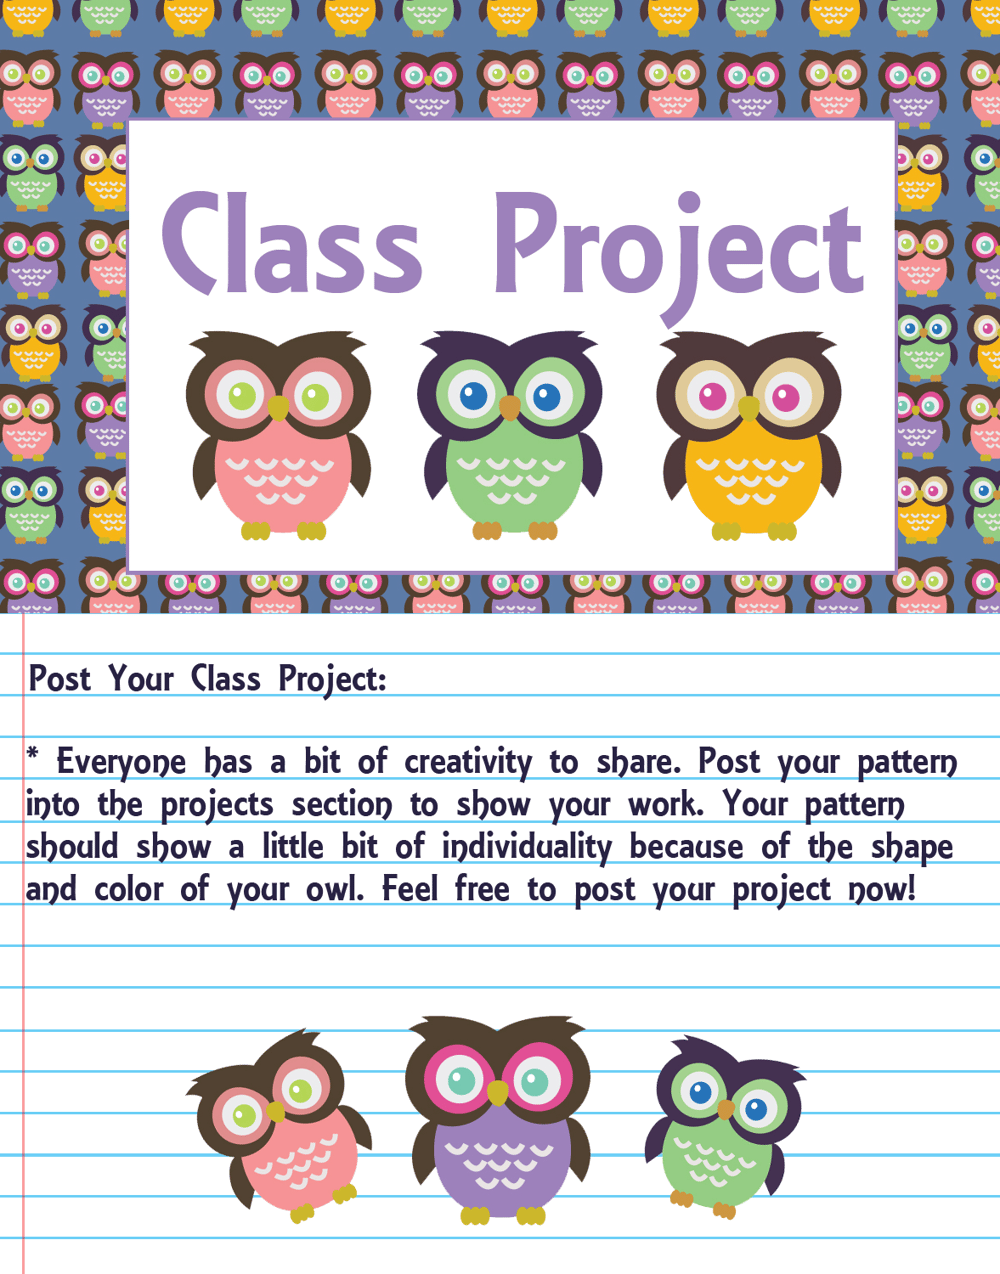 Post Your Project!  - image 1 - student project